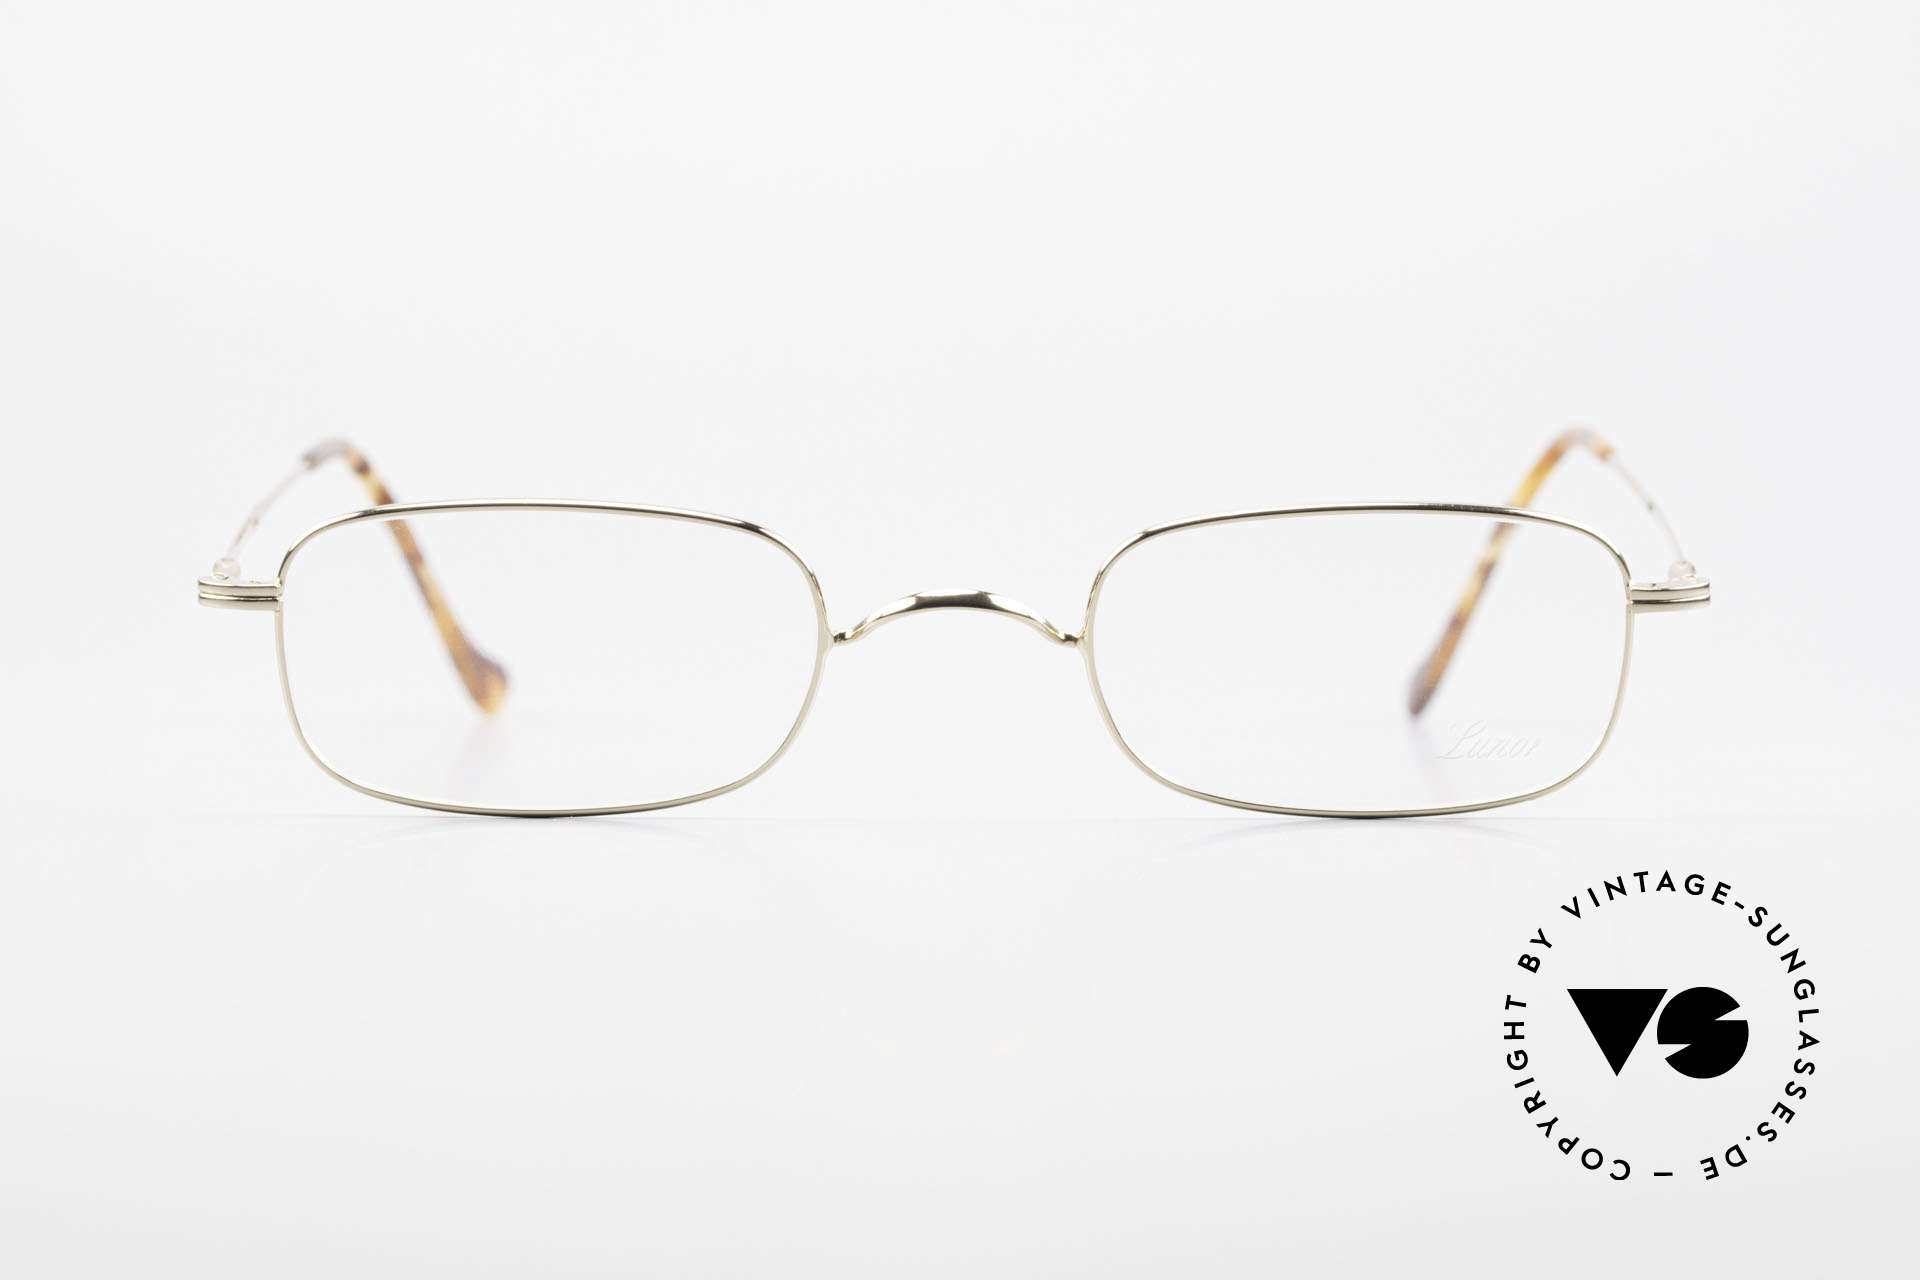 Lunor XV 321 Titanium Frame Gold-Plated, gold-plated, full rimmed, with an anatomic nose bridge, Made for Men and Women